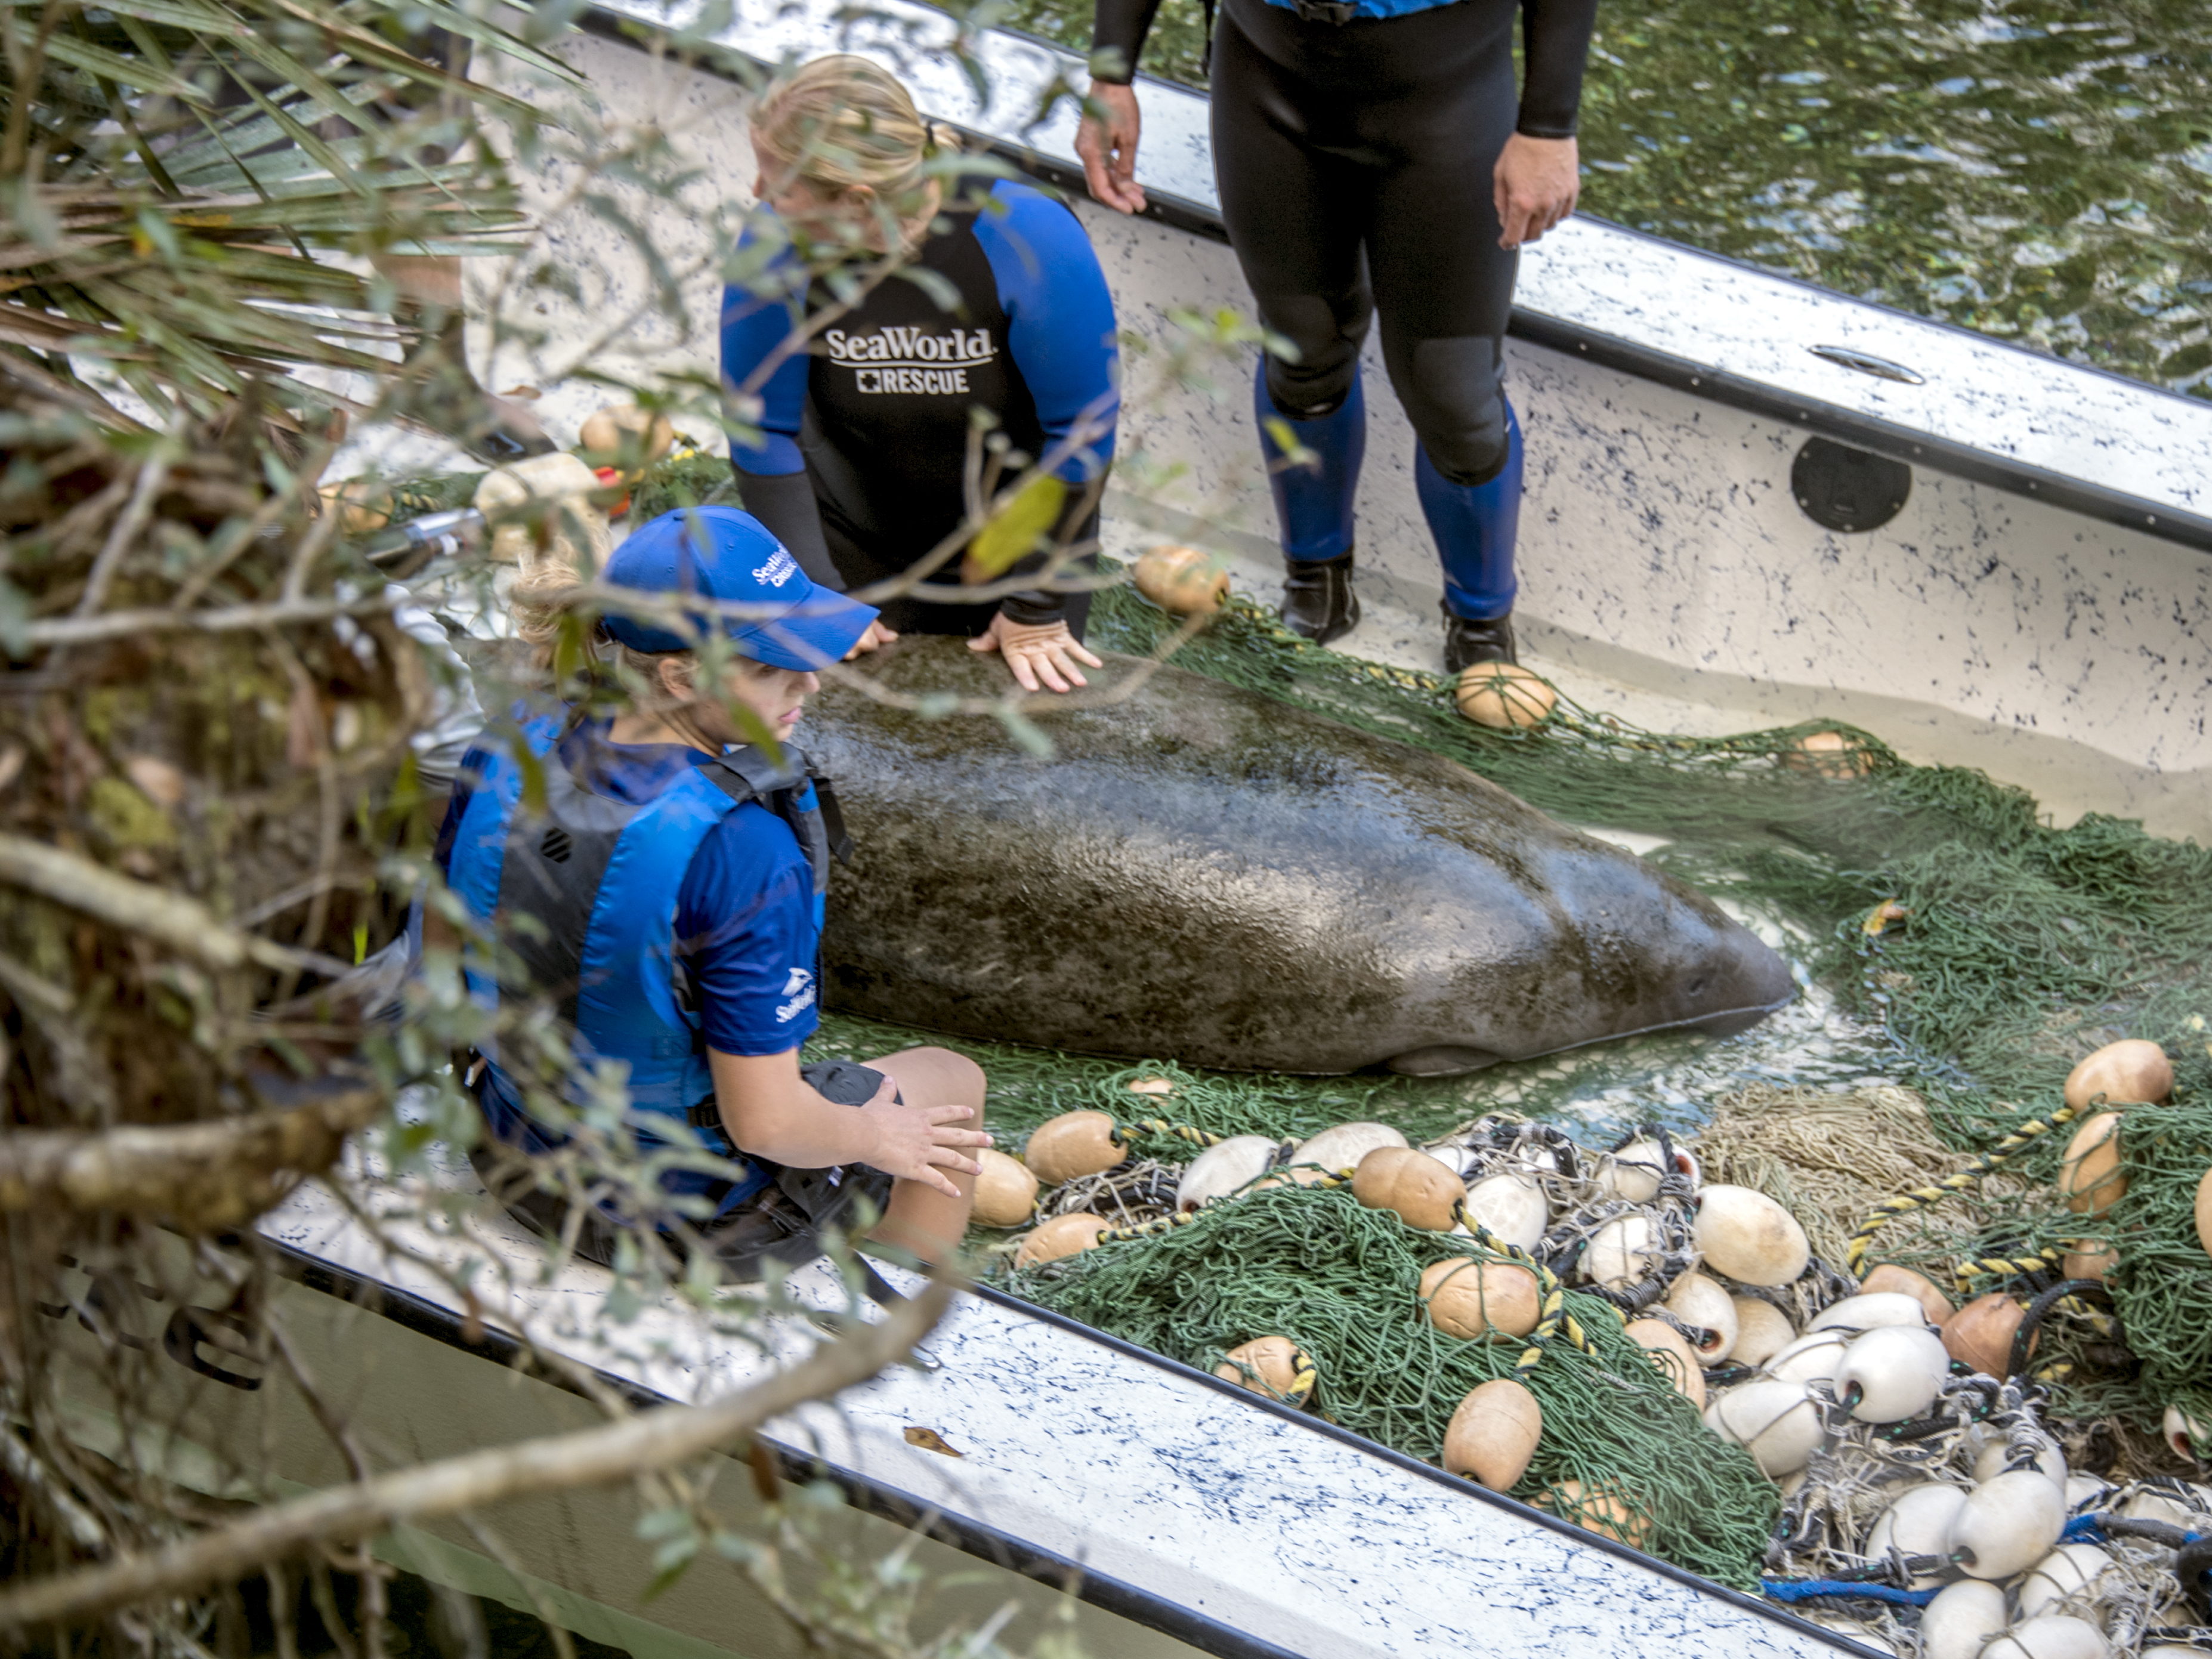 A SeaWorld rescue operations team finds a sick manatee in need of rehabilitation. Bethany Bagley/Courtesy SeaWorld